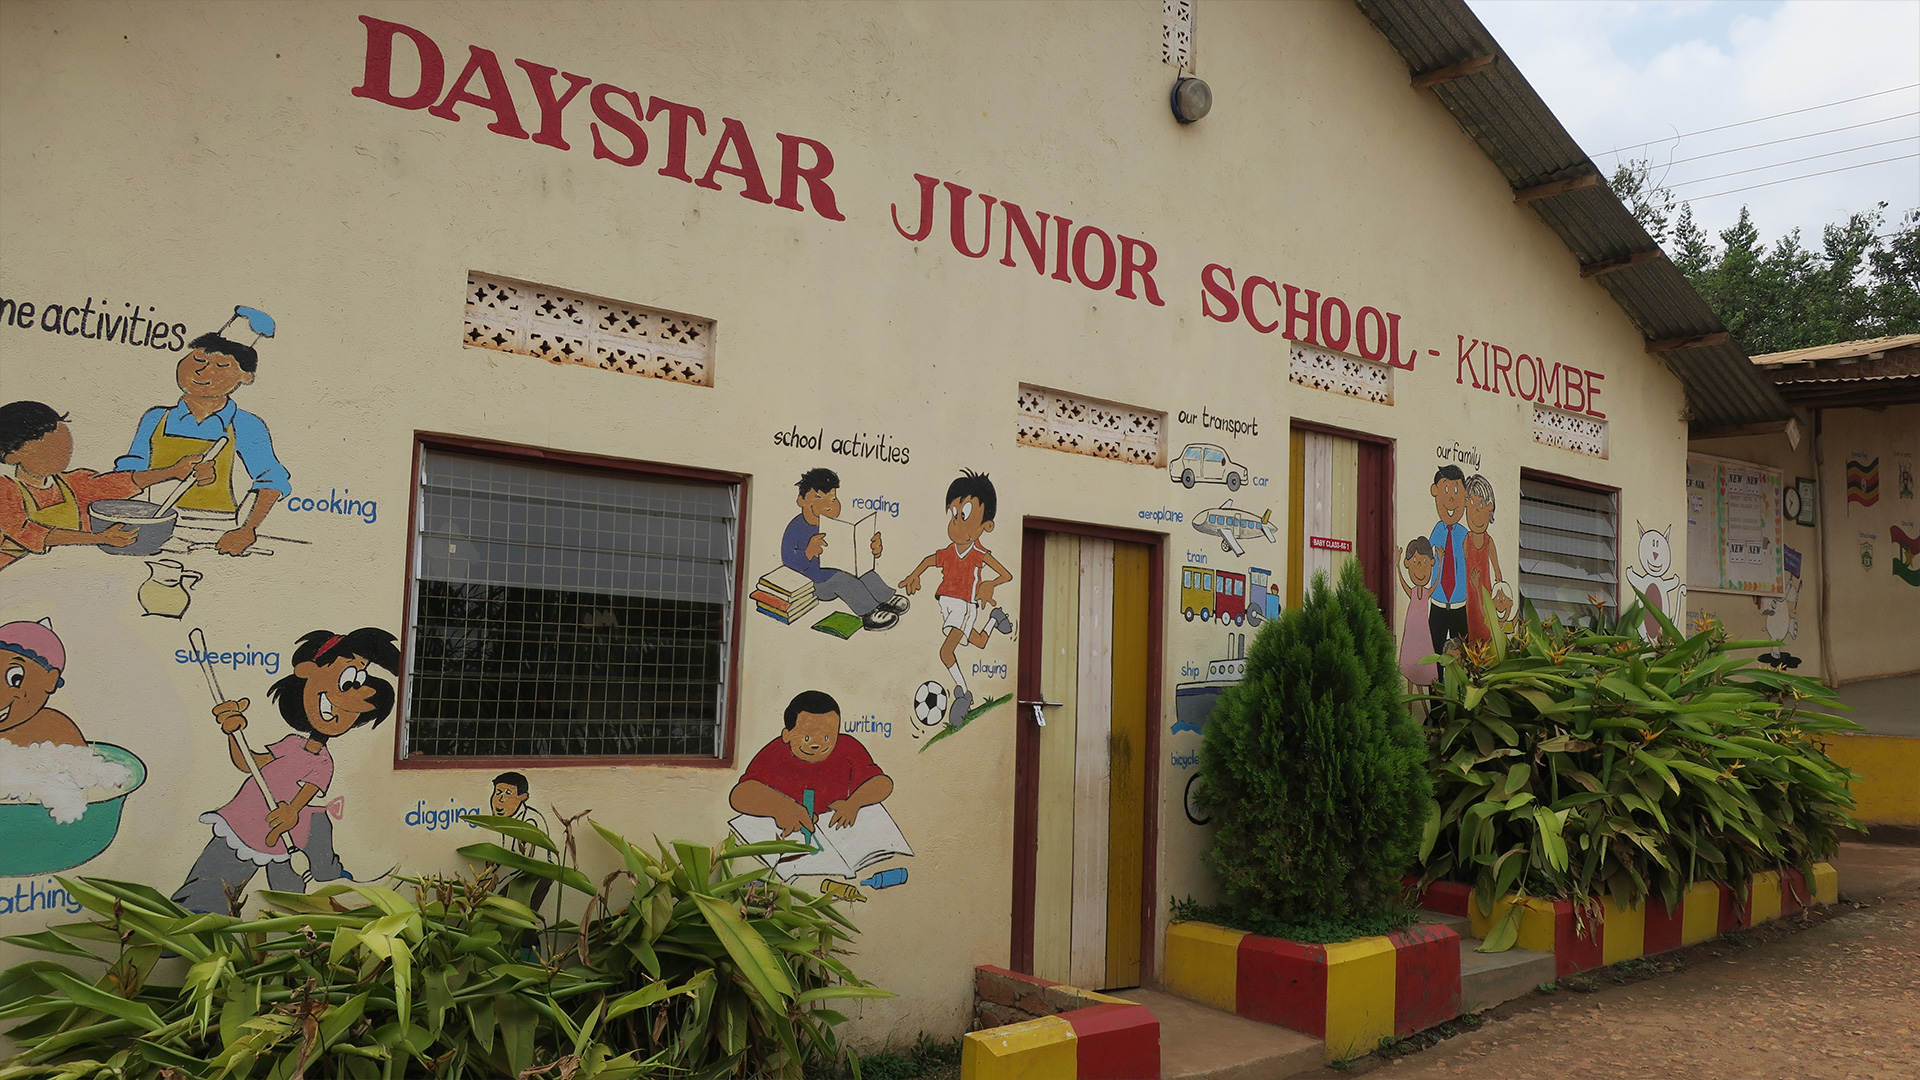 Daystar Junior School